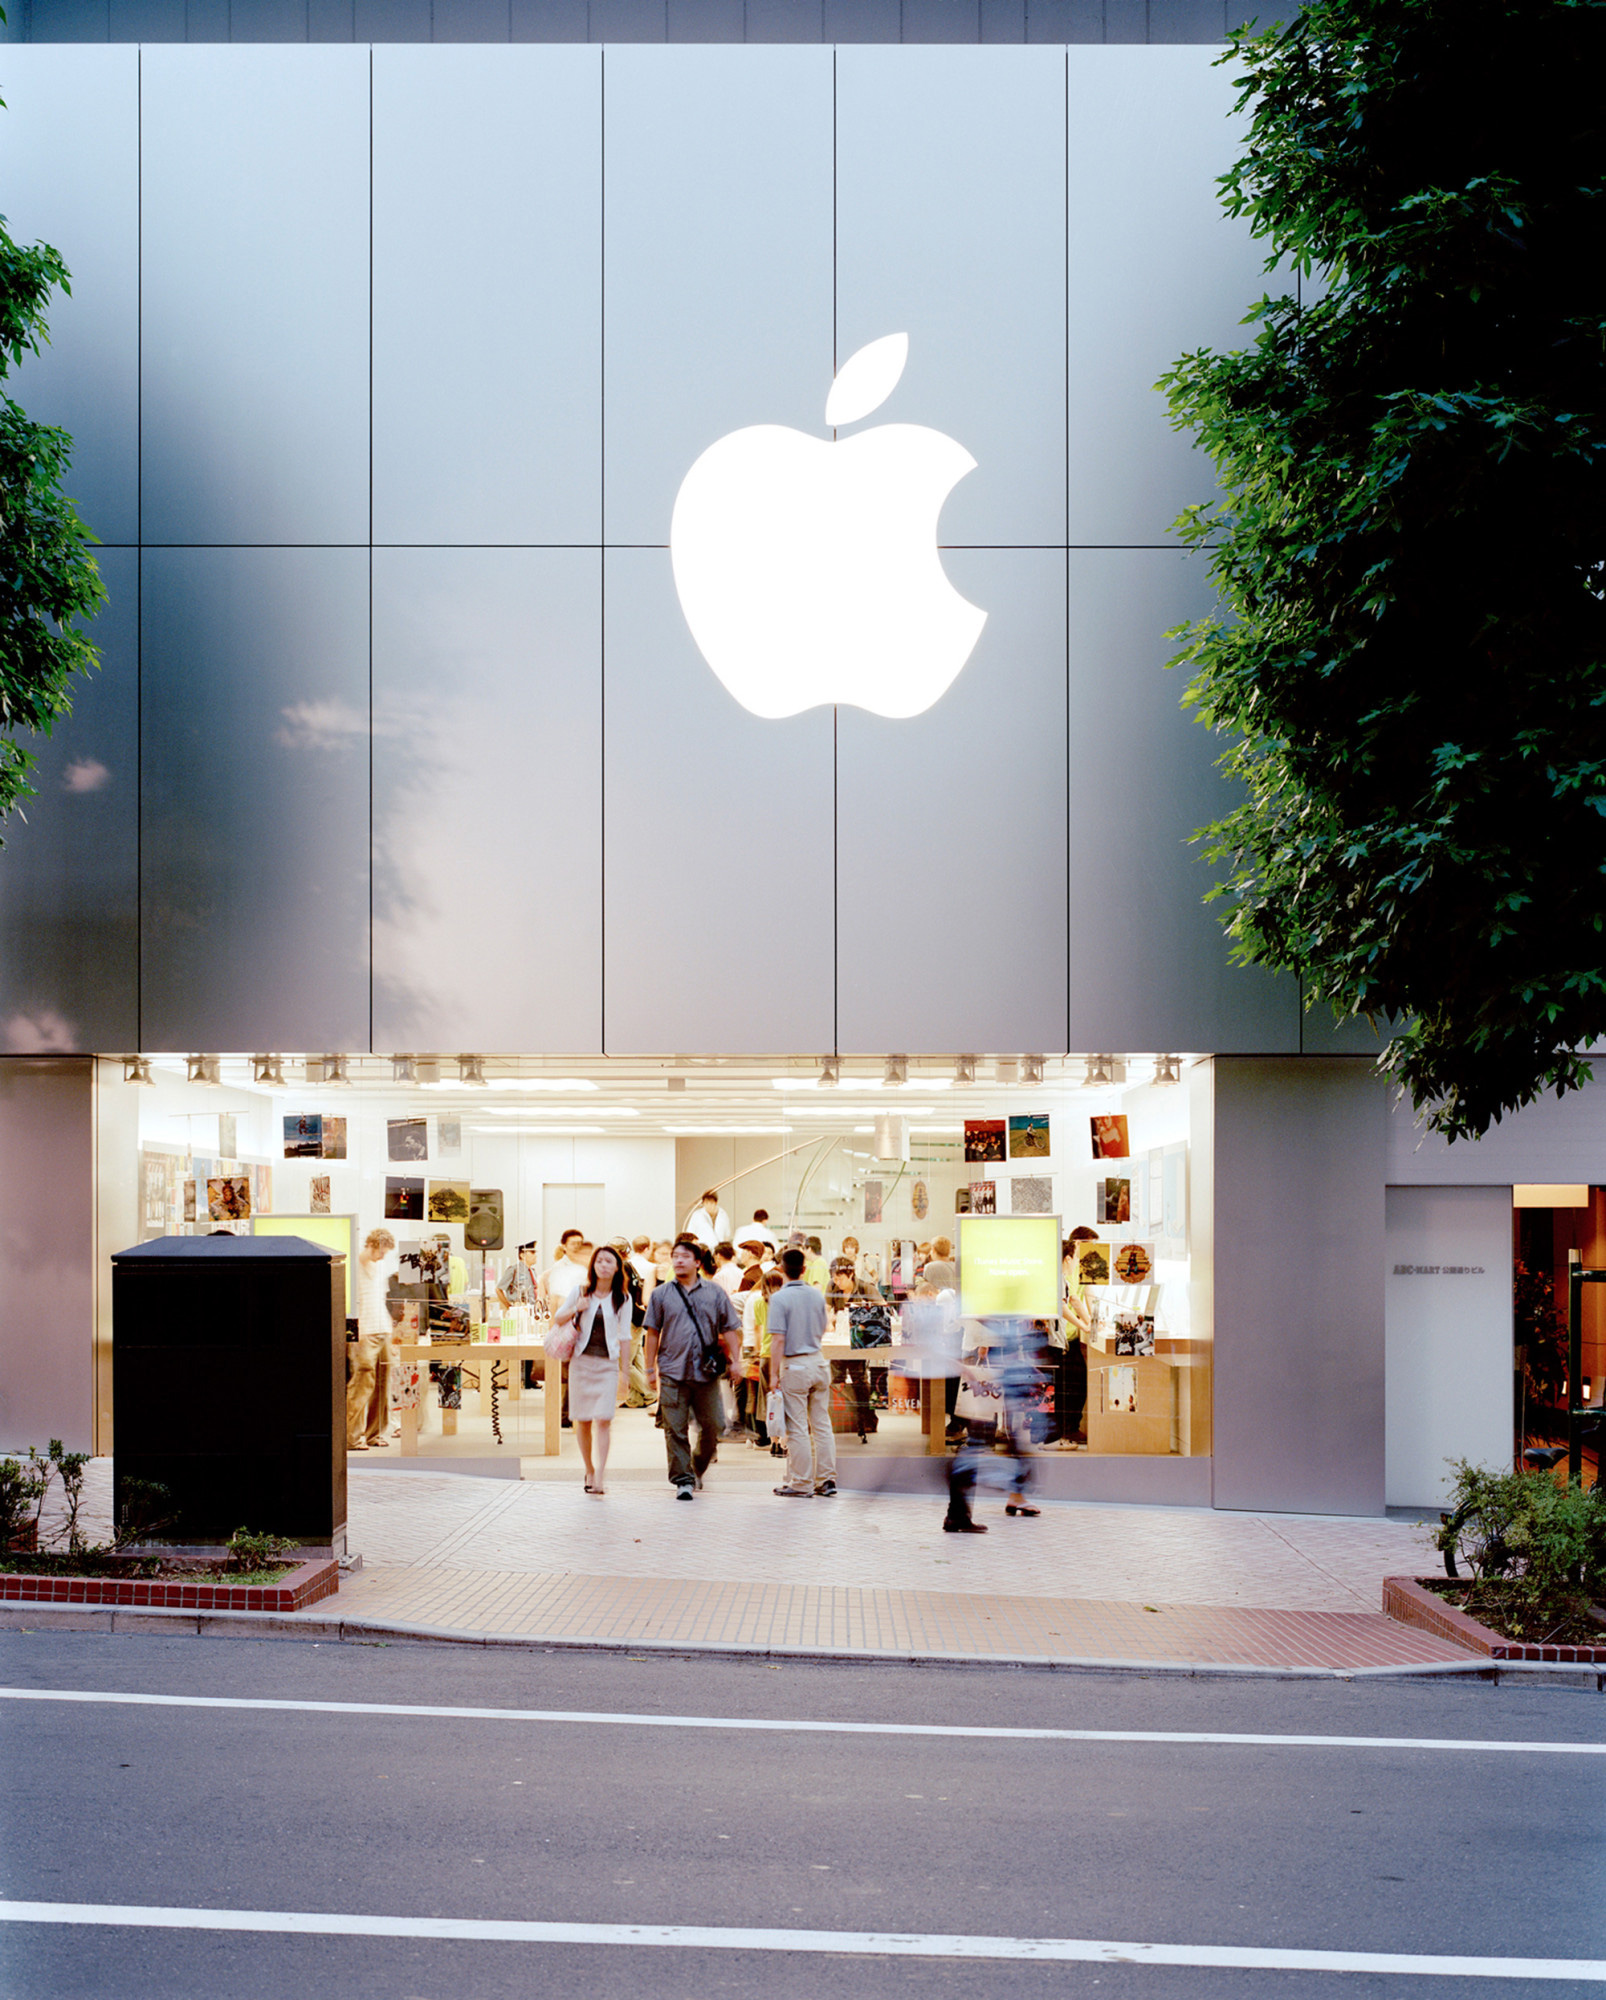 The design of the stores aligns with Apple's brand values |Tim Kobe | Eight Inc. | STIRworld